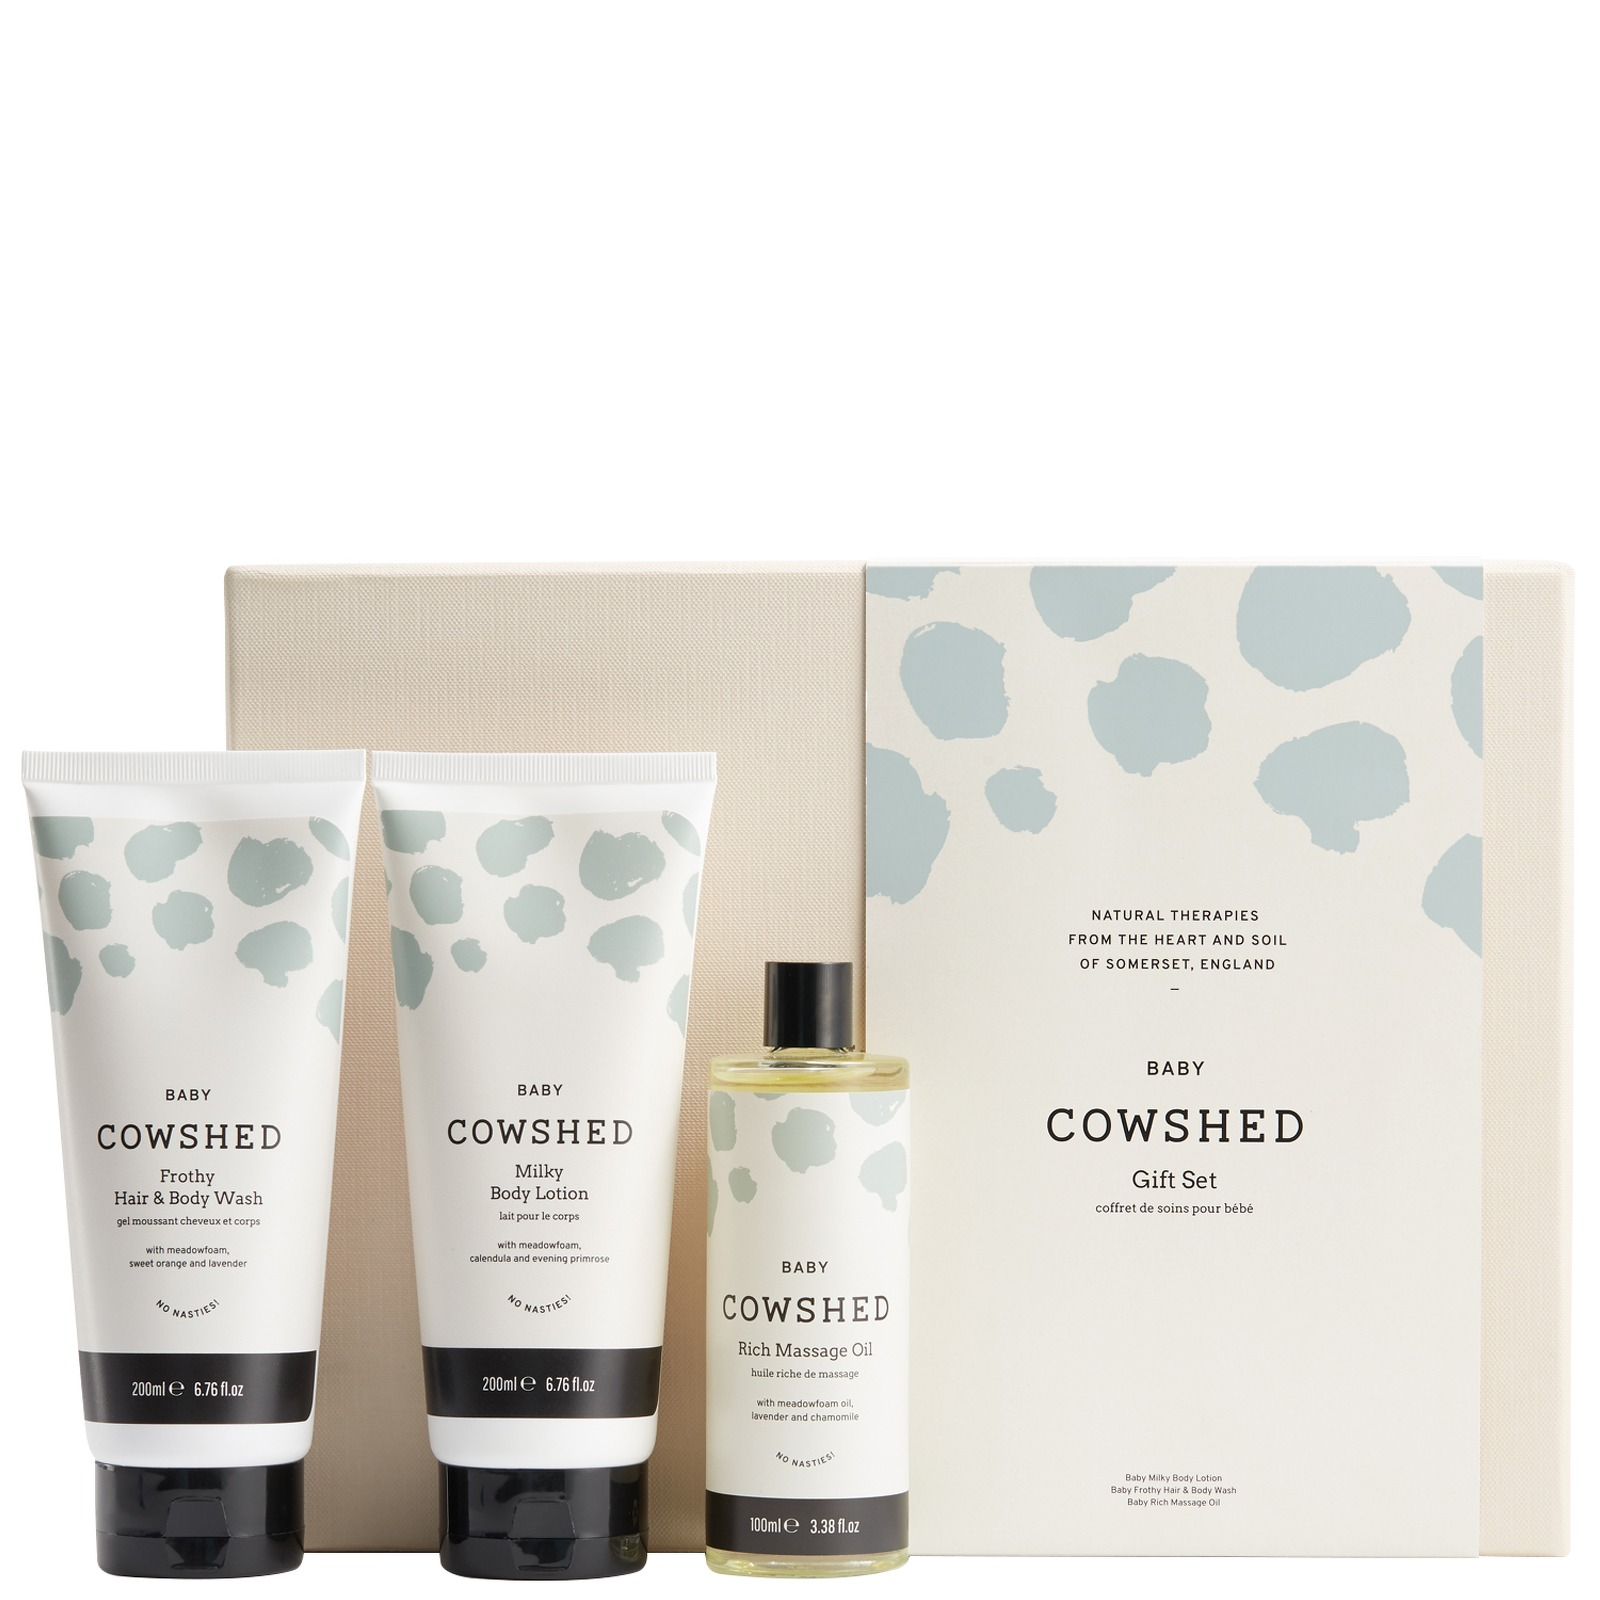 Cowshed Gifts & Collections Baby Set